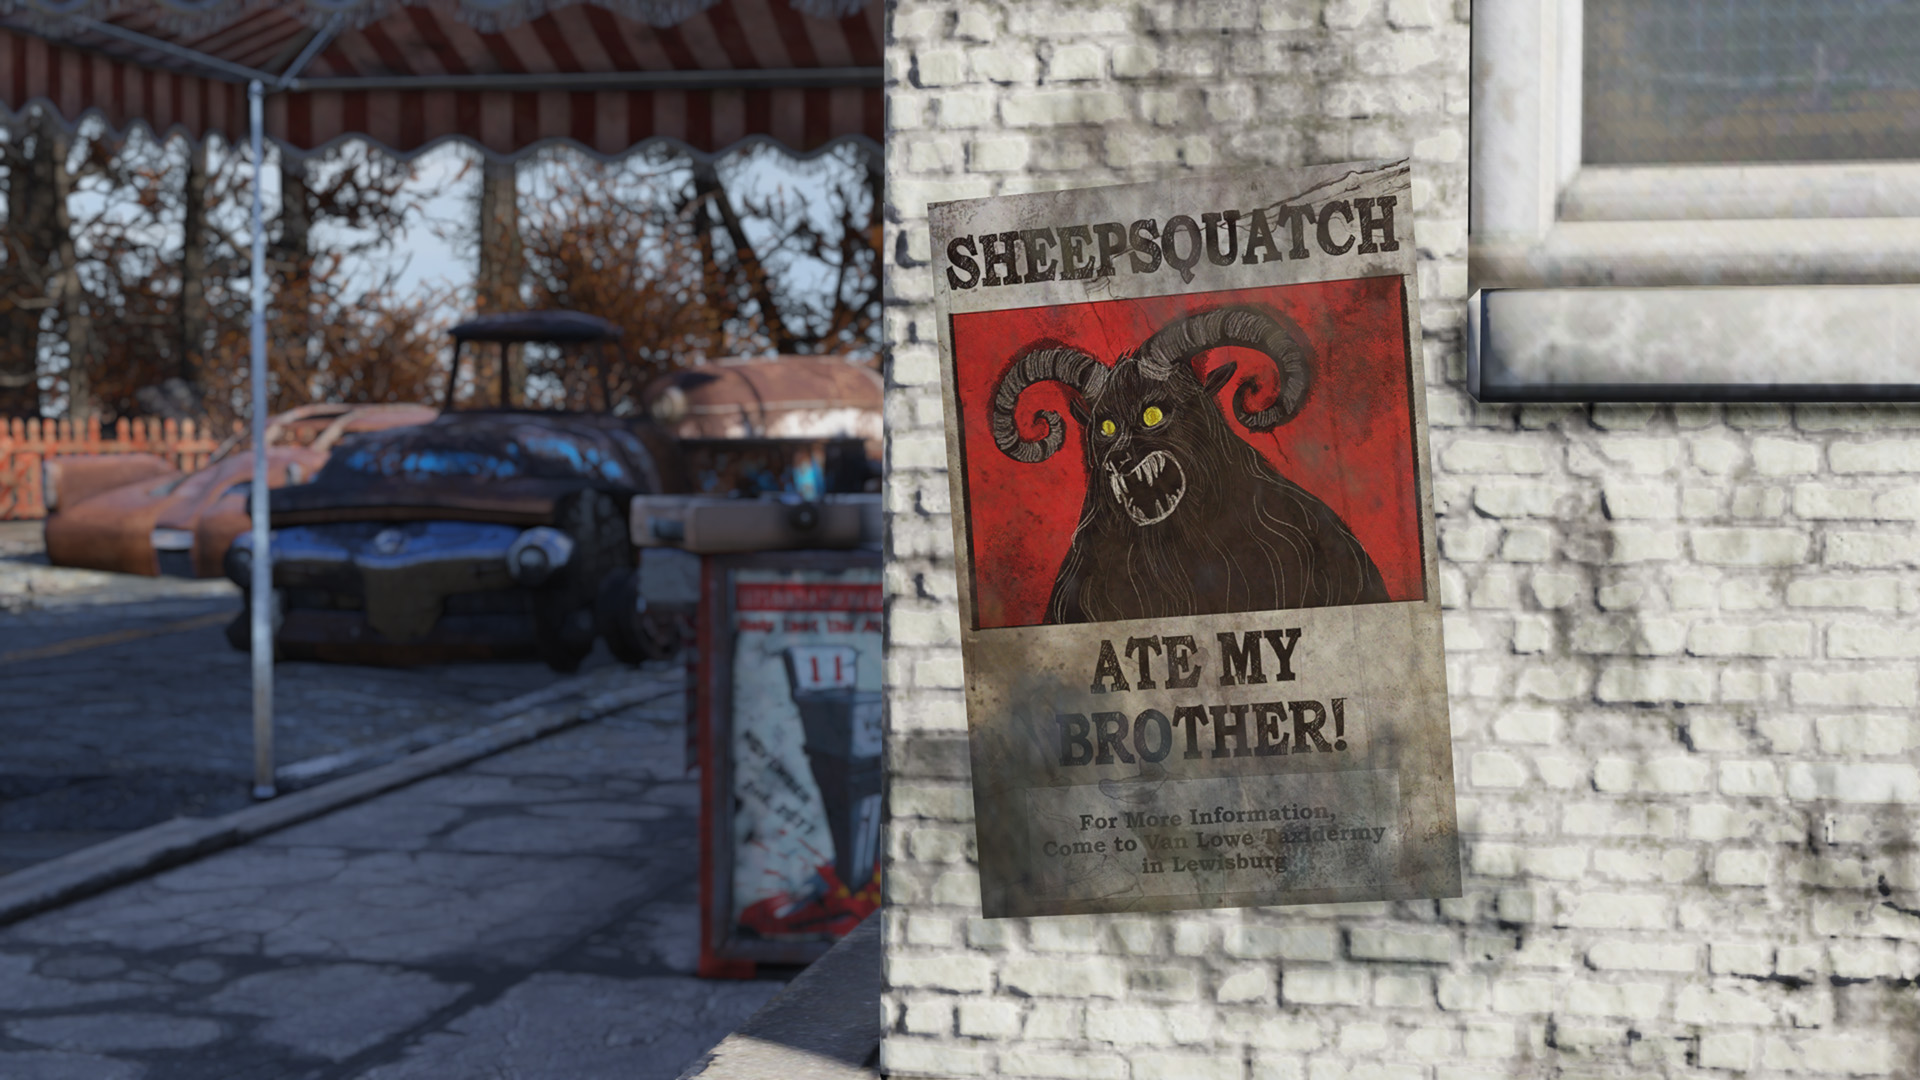 Fallout 76 Atomic Shop Patch, Items and Sales -